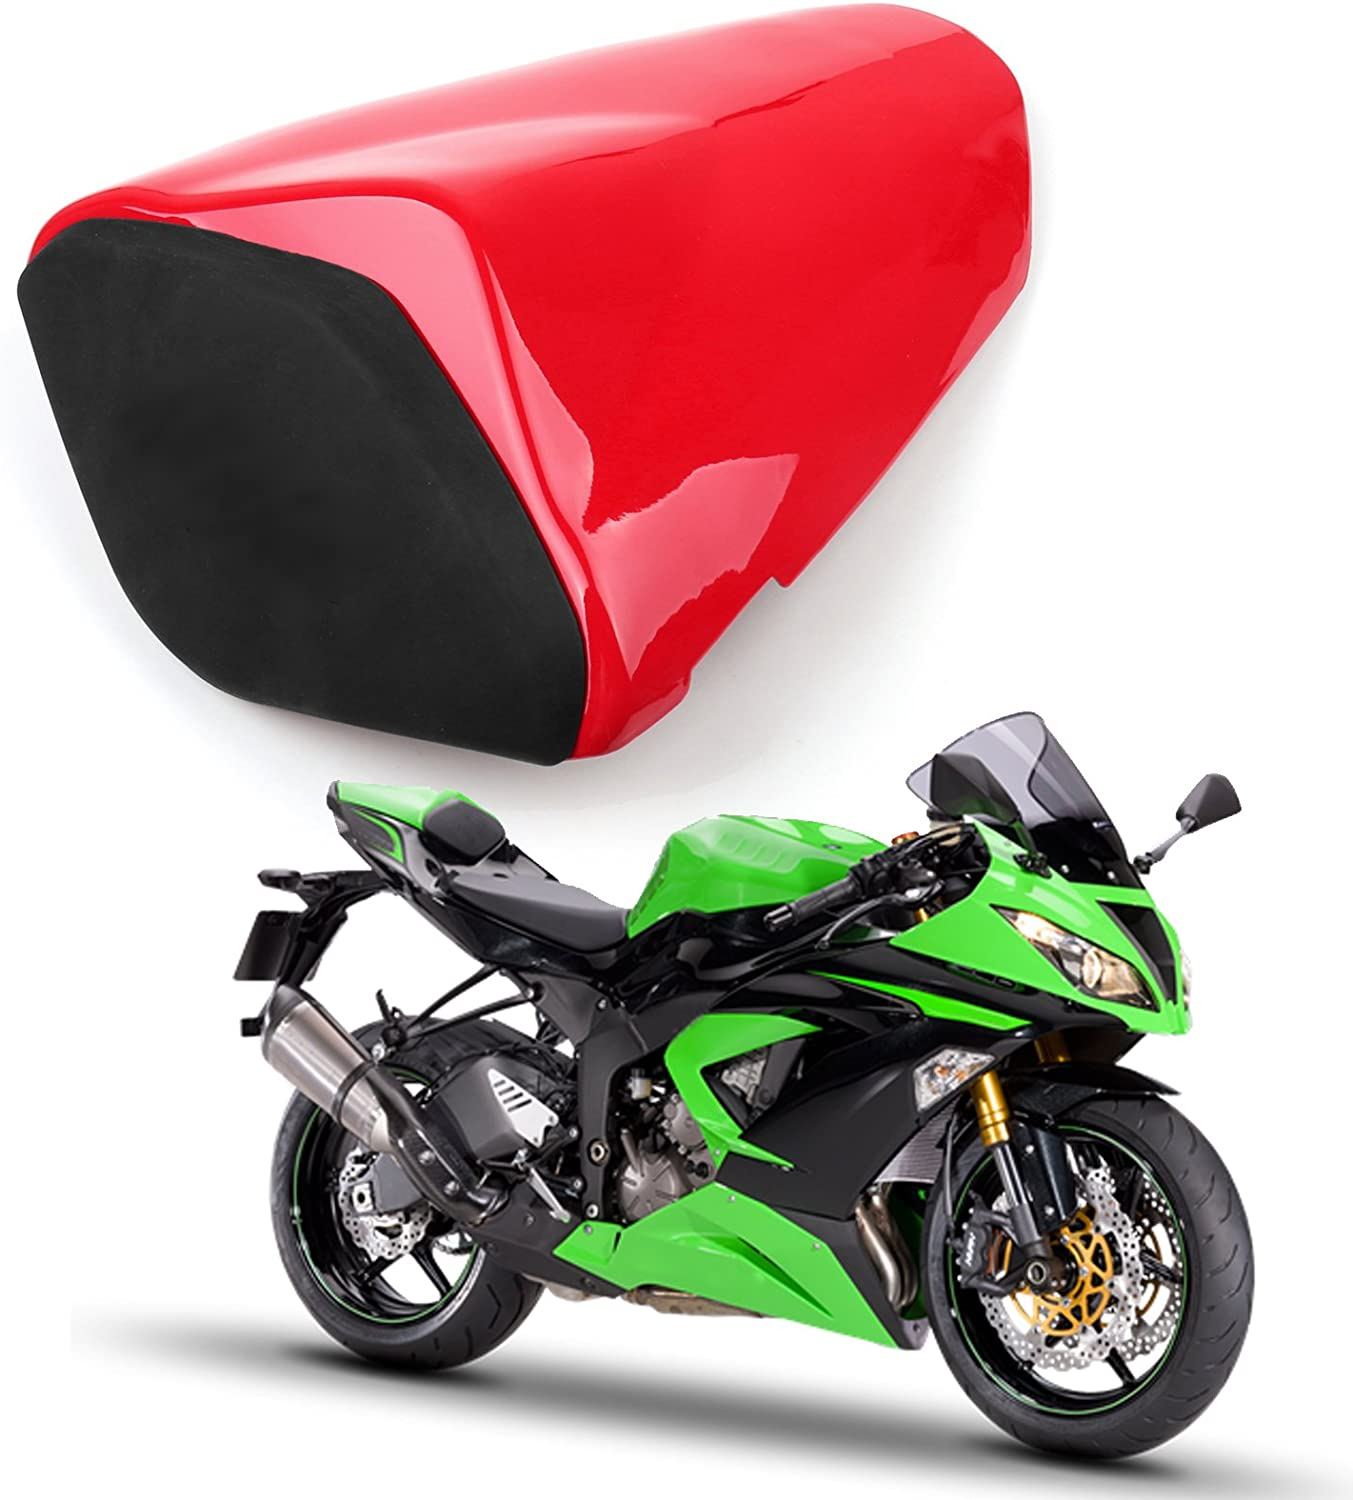 2009-2014 Mad Hornets Seat Cowl Rear Cover For Kawasaki ZX6R 636 Green